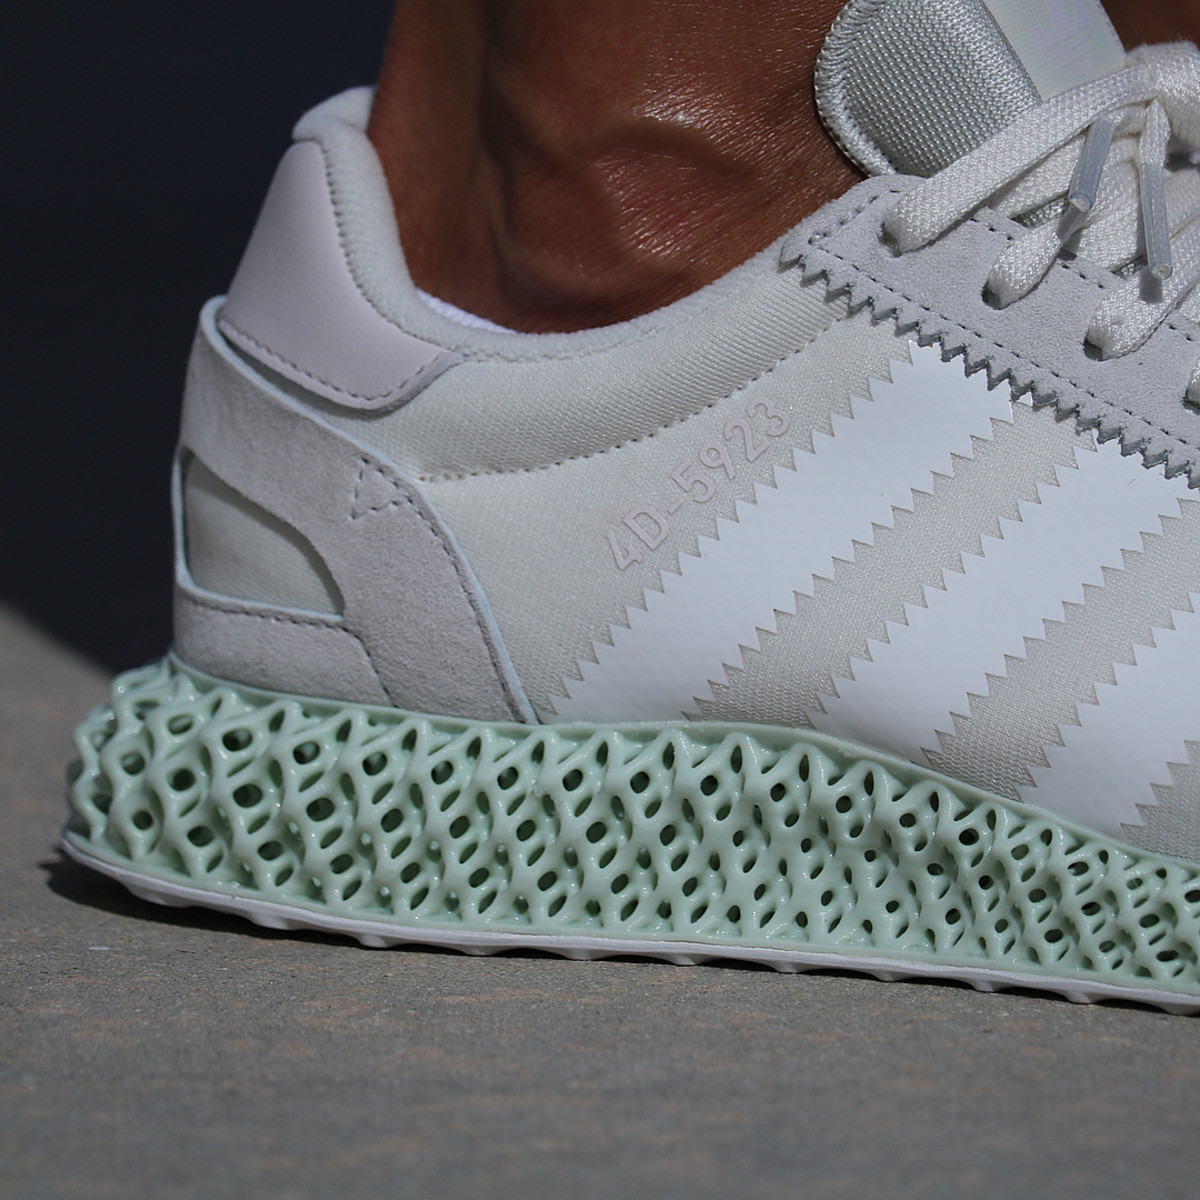 adidas-4d-5923-first-look-03